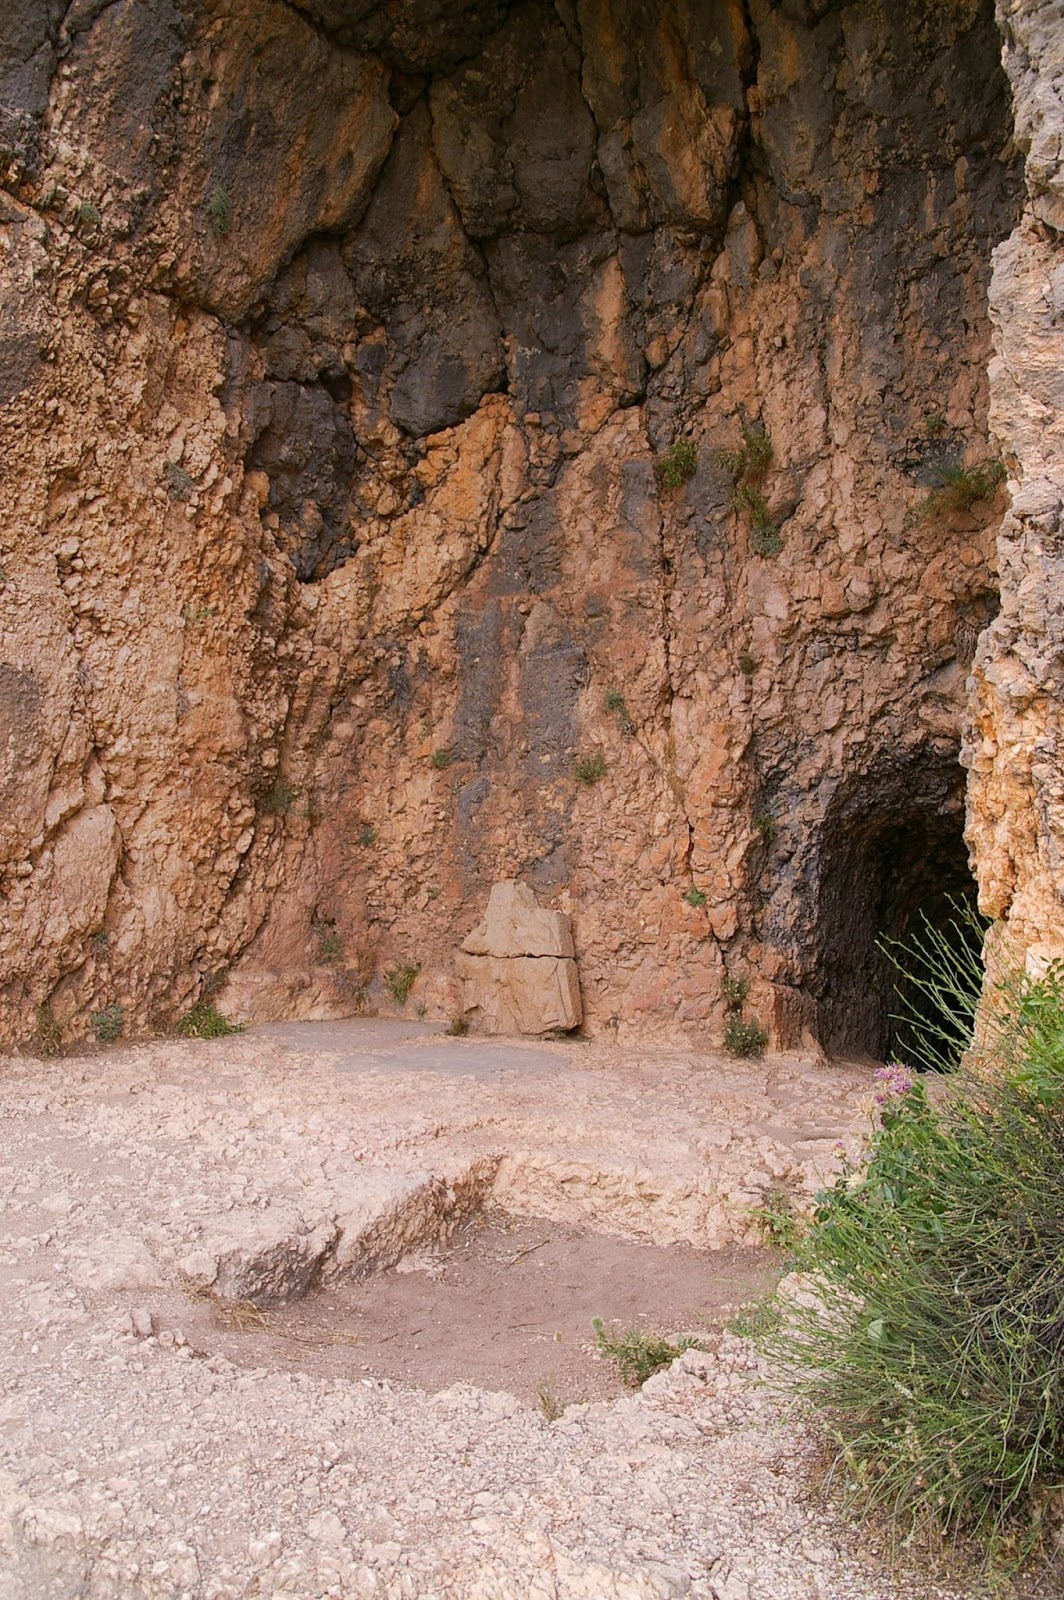 BiblePlaces Blog: Gezer Water System—Is It a Water System?